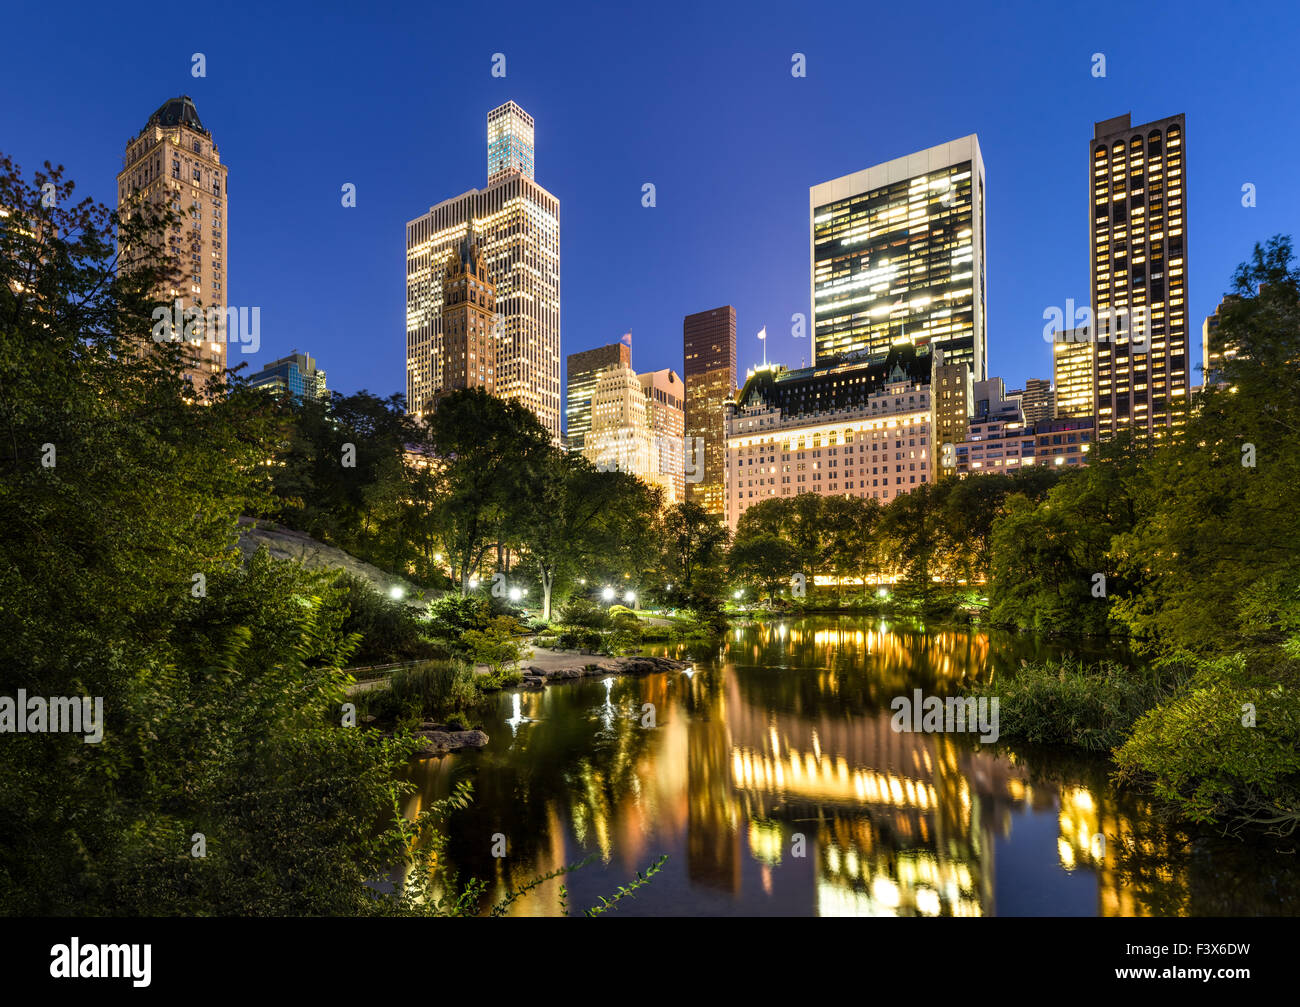 Manhattan skyscrapers illuminated in early evening light. The buildings reflect in the Central Park Pond. New York - Stock Image